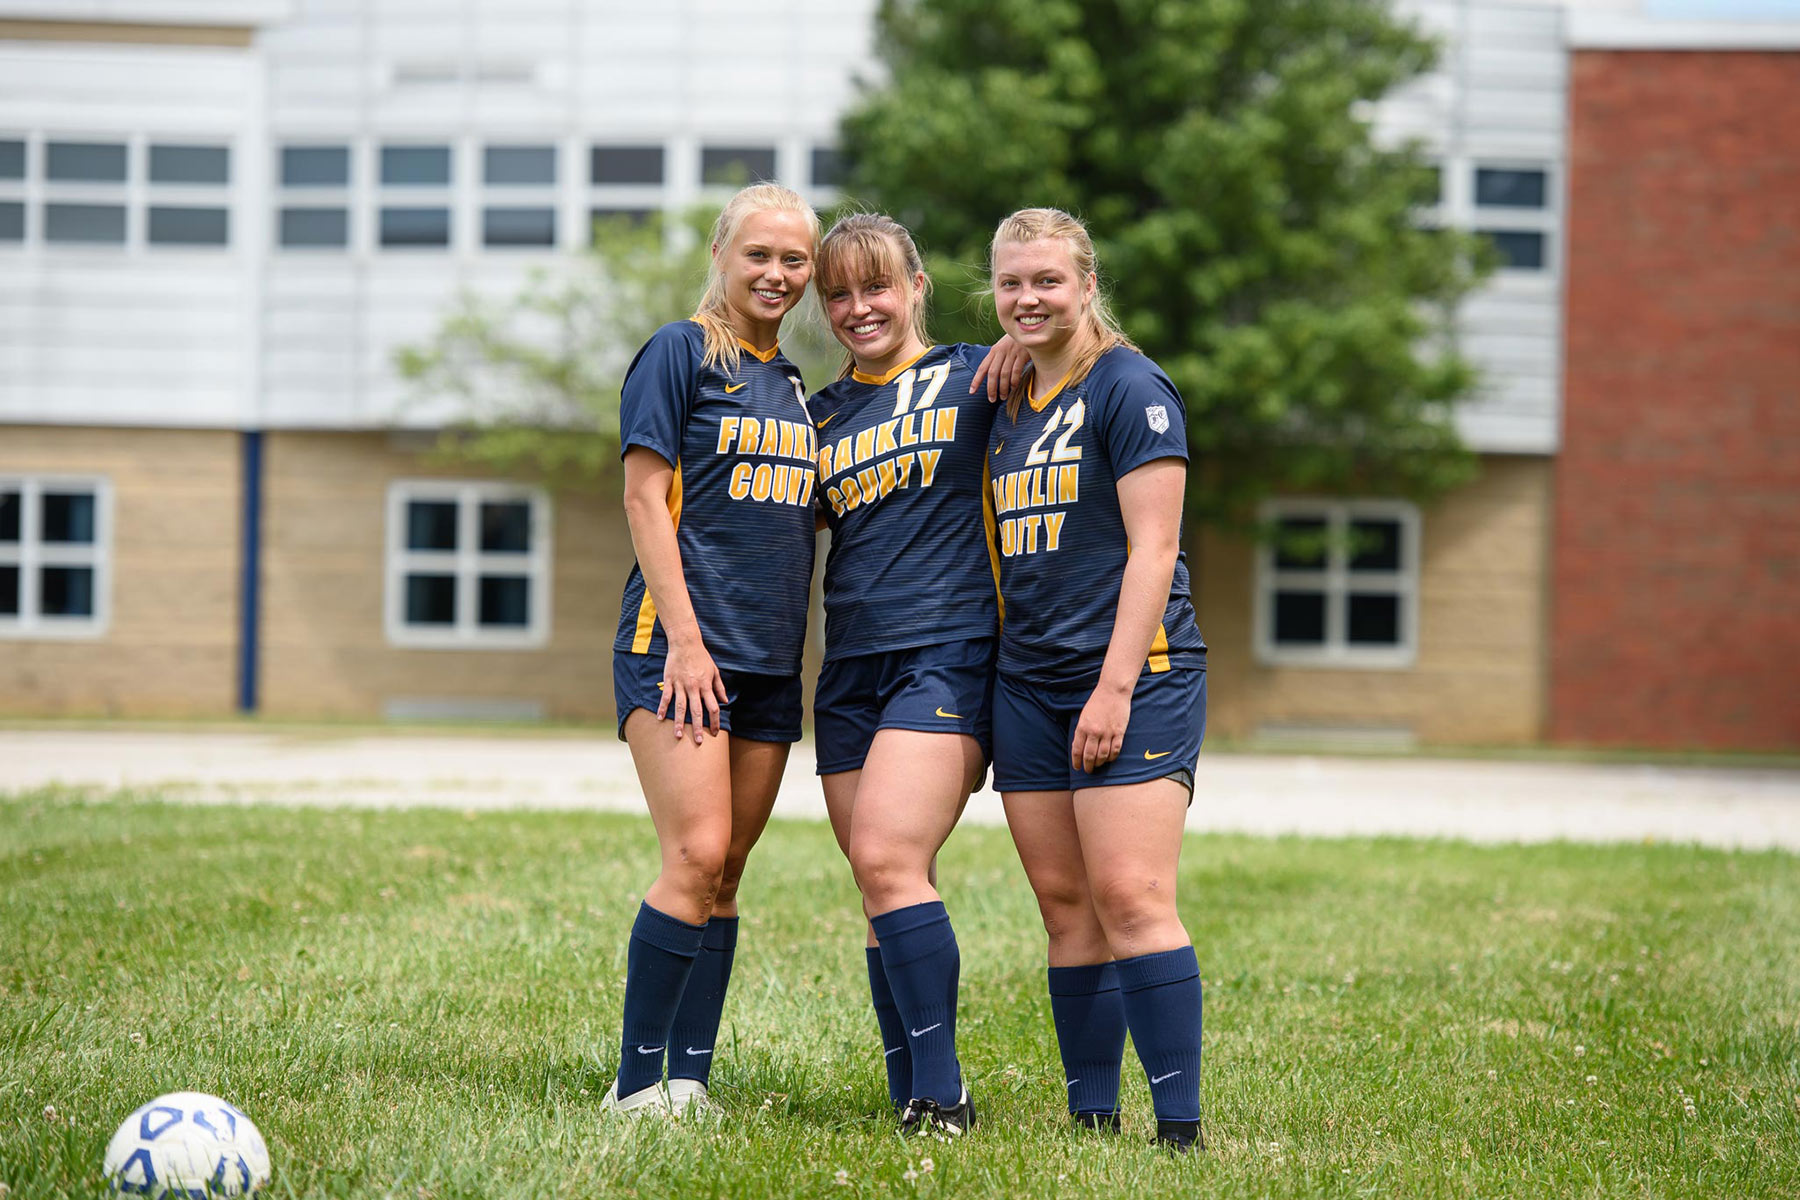 The three sisters stand close together for a group photo in their soccer uniforms.